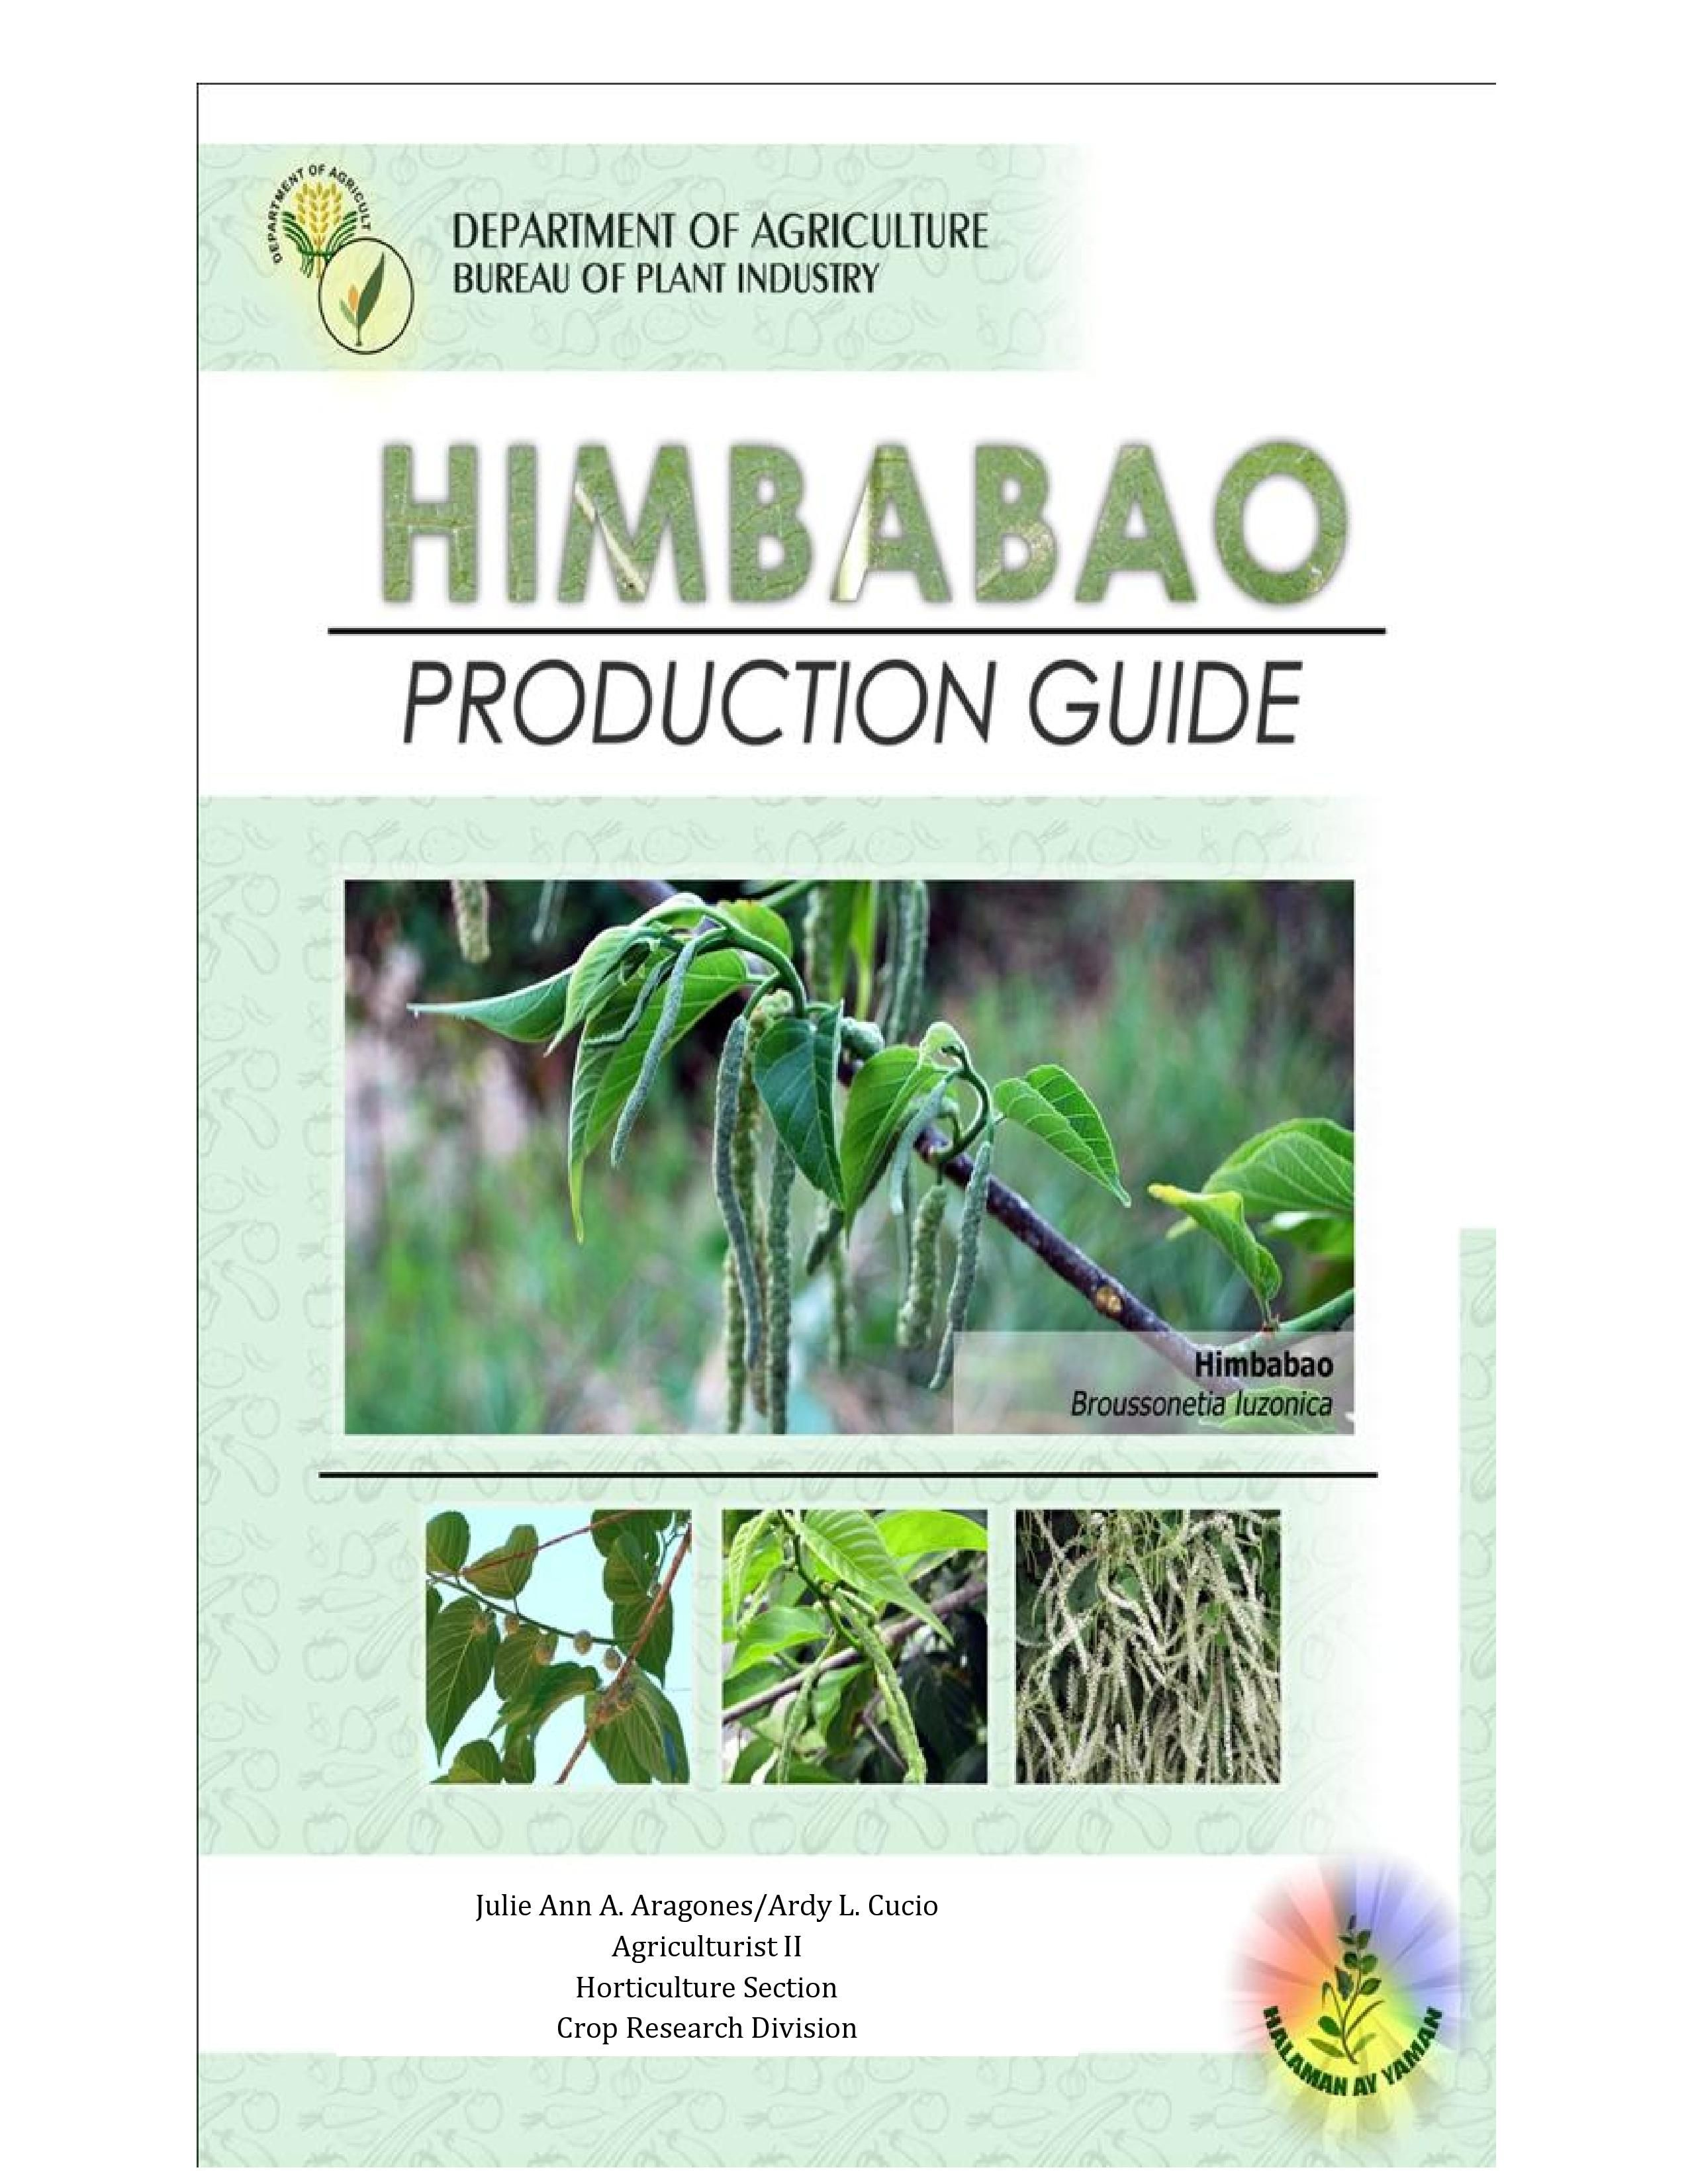 Himbabao Production Guide https://www.facebook.com/MyriadFarms1